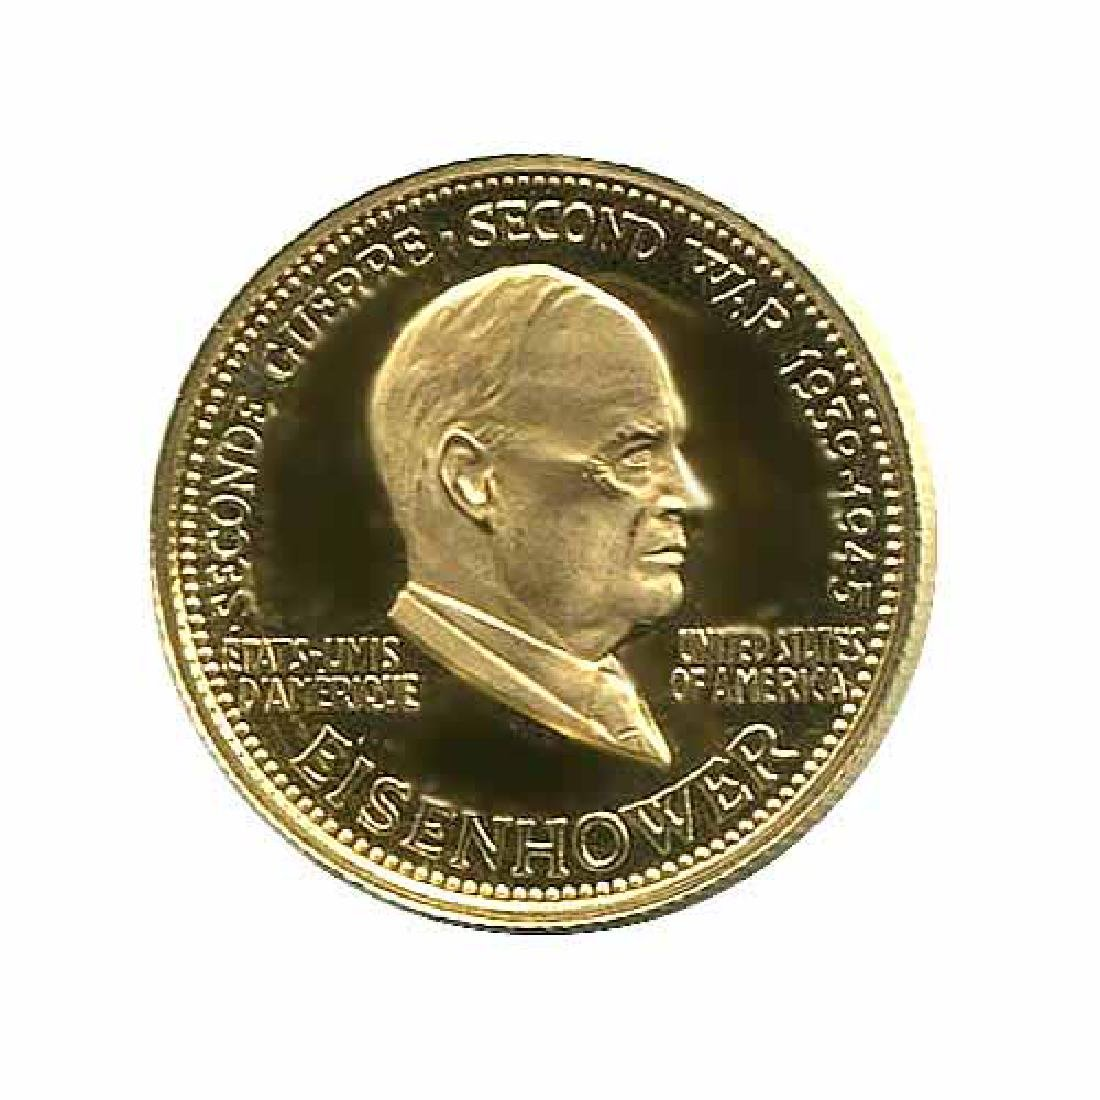 WWII Commemorative Proof Gold Medal 7g. 1958 Eisenhower